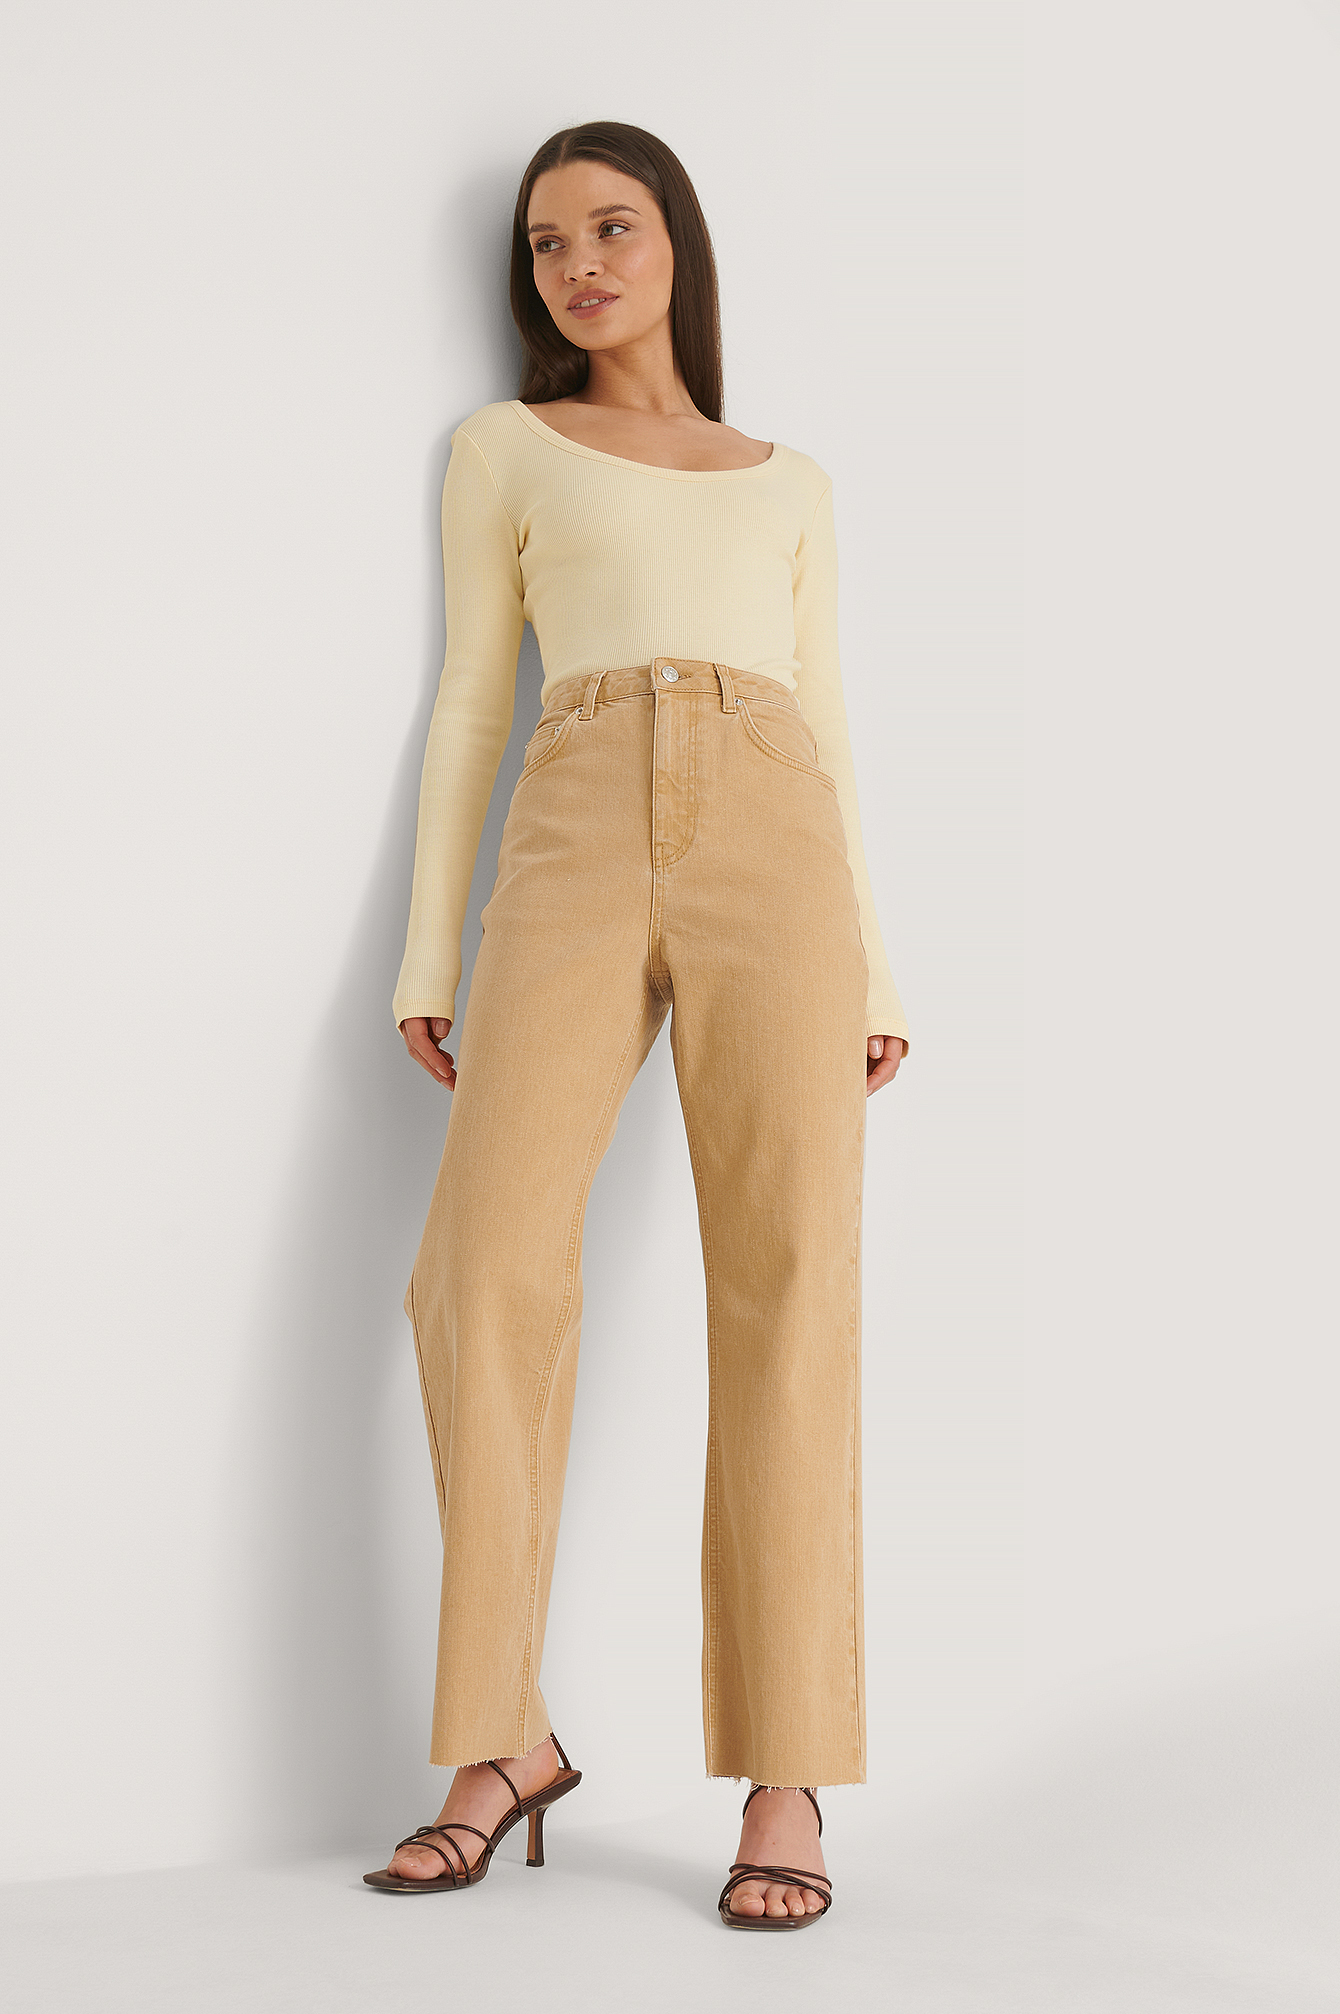 Cantaloupe Straight High Waist Colored Denim